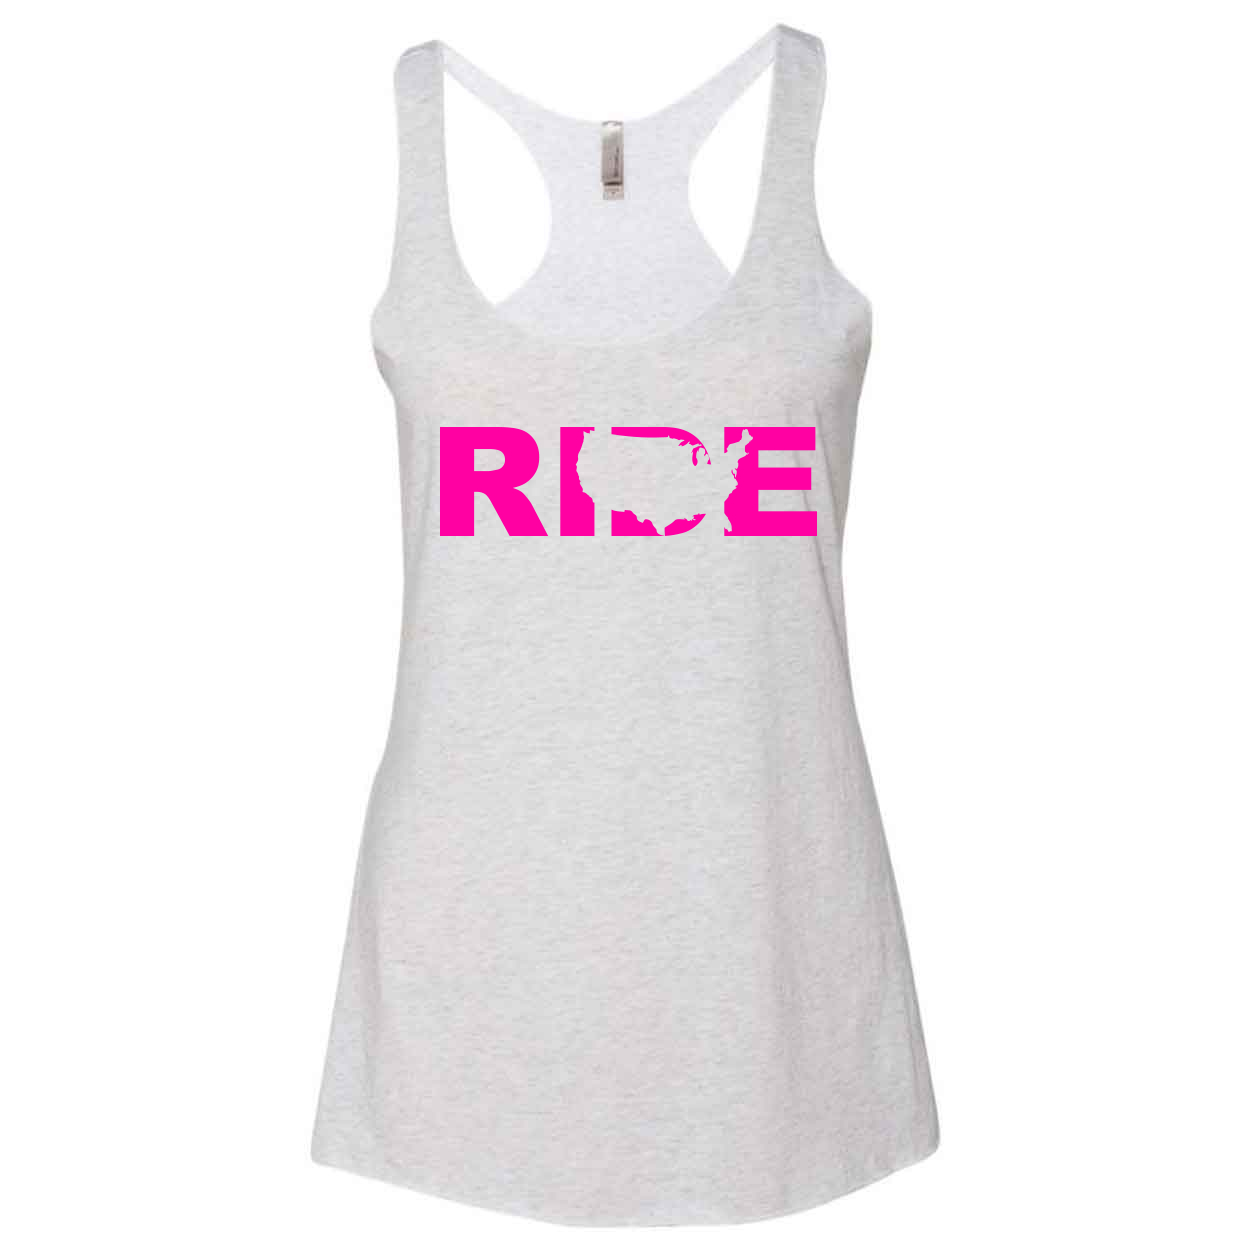 Ride United States Classic Women's Ultra Thin Tank Top Heather White (Pink Logo)